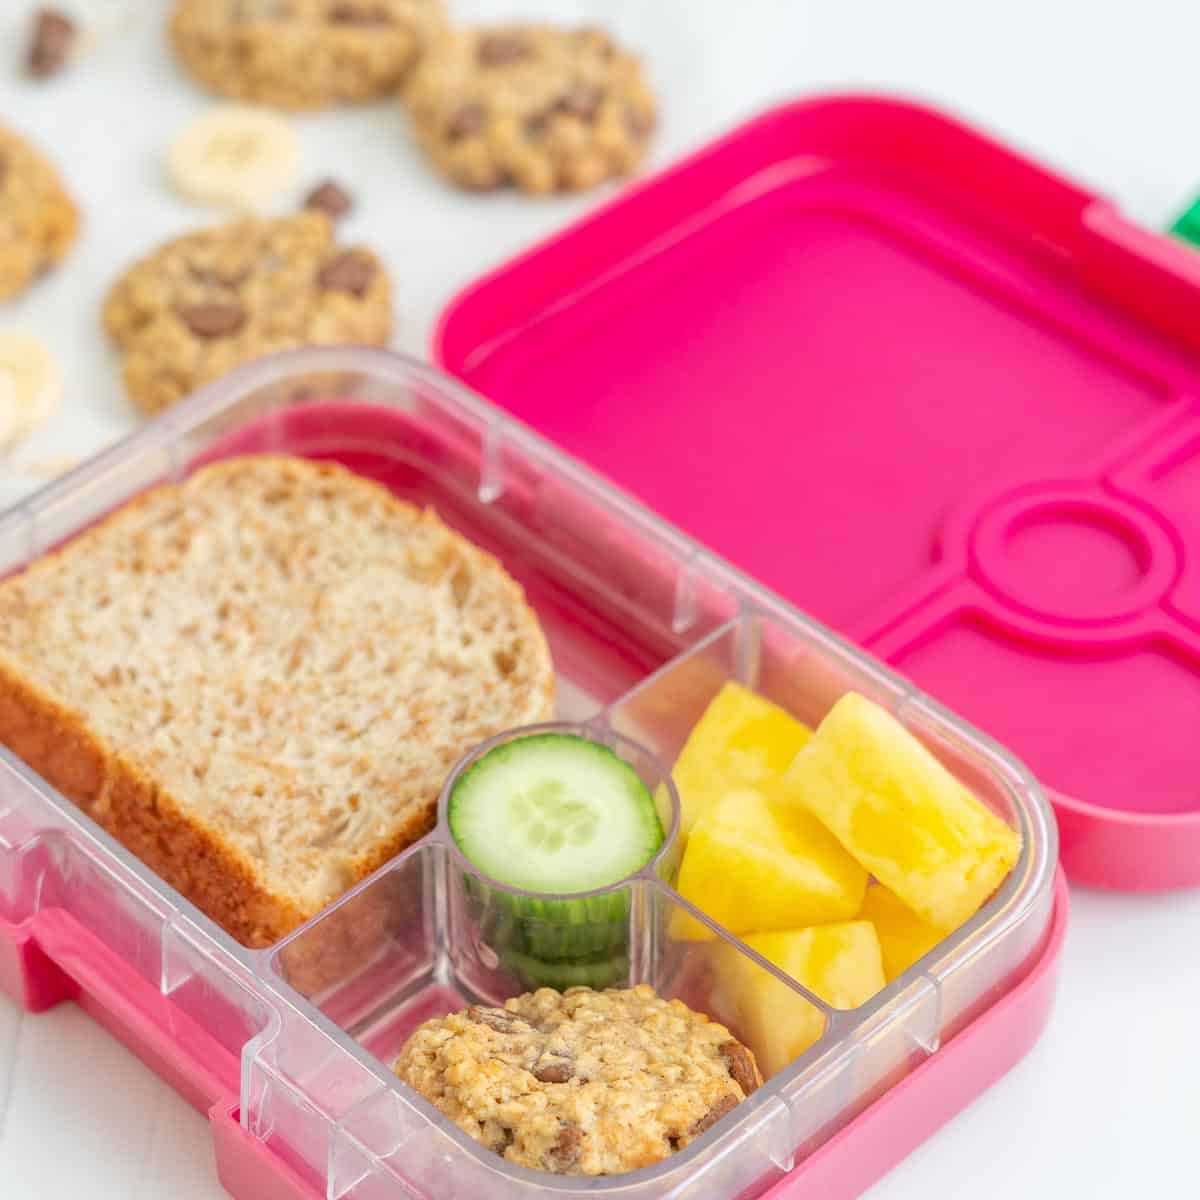 A pink bento style lunchbox, packed with a sandwich, pineapple, oatmeal cookie and cucumber slices.